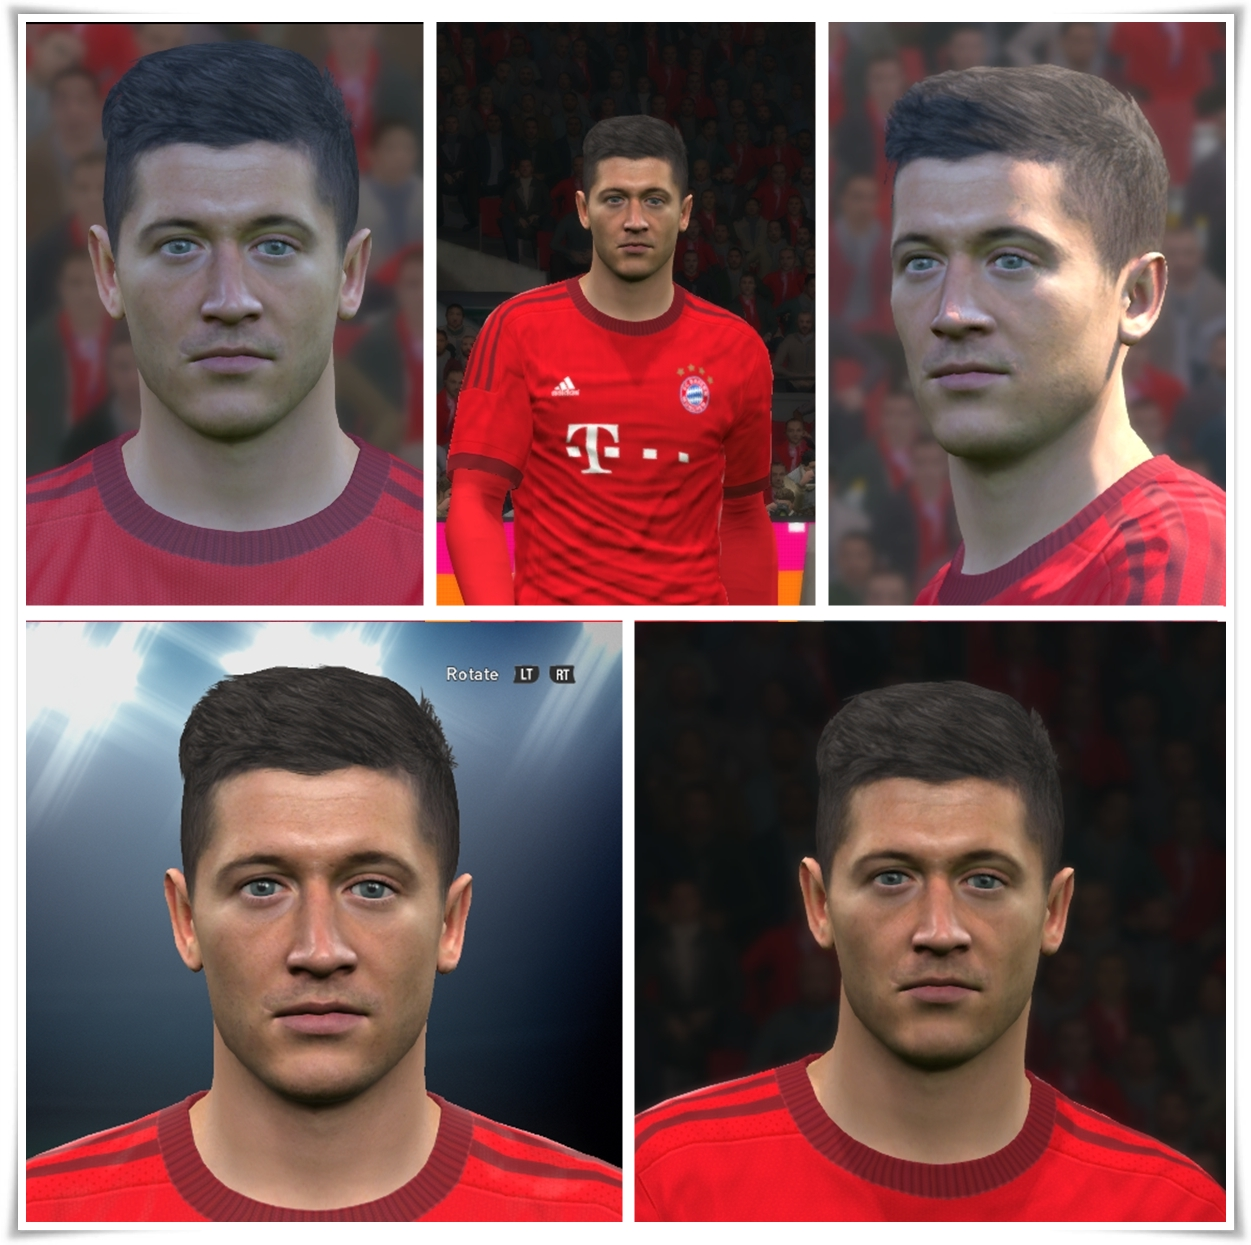 PES 2016 Robert Lewandowski